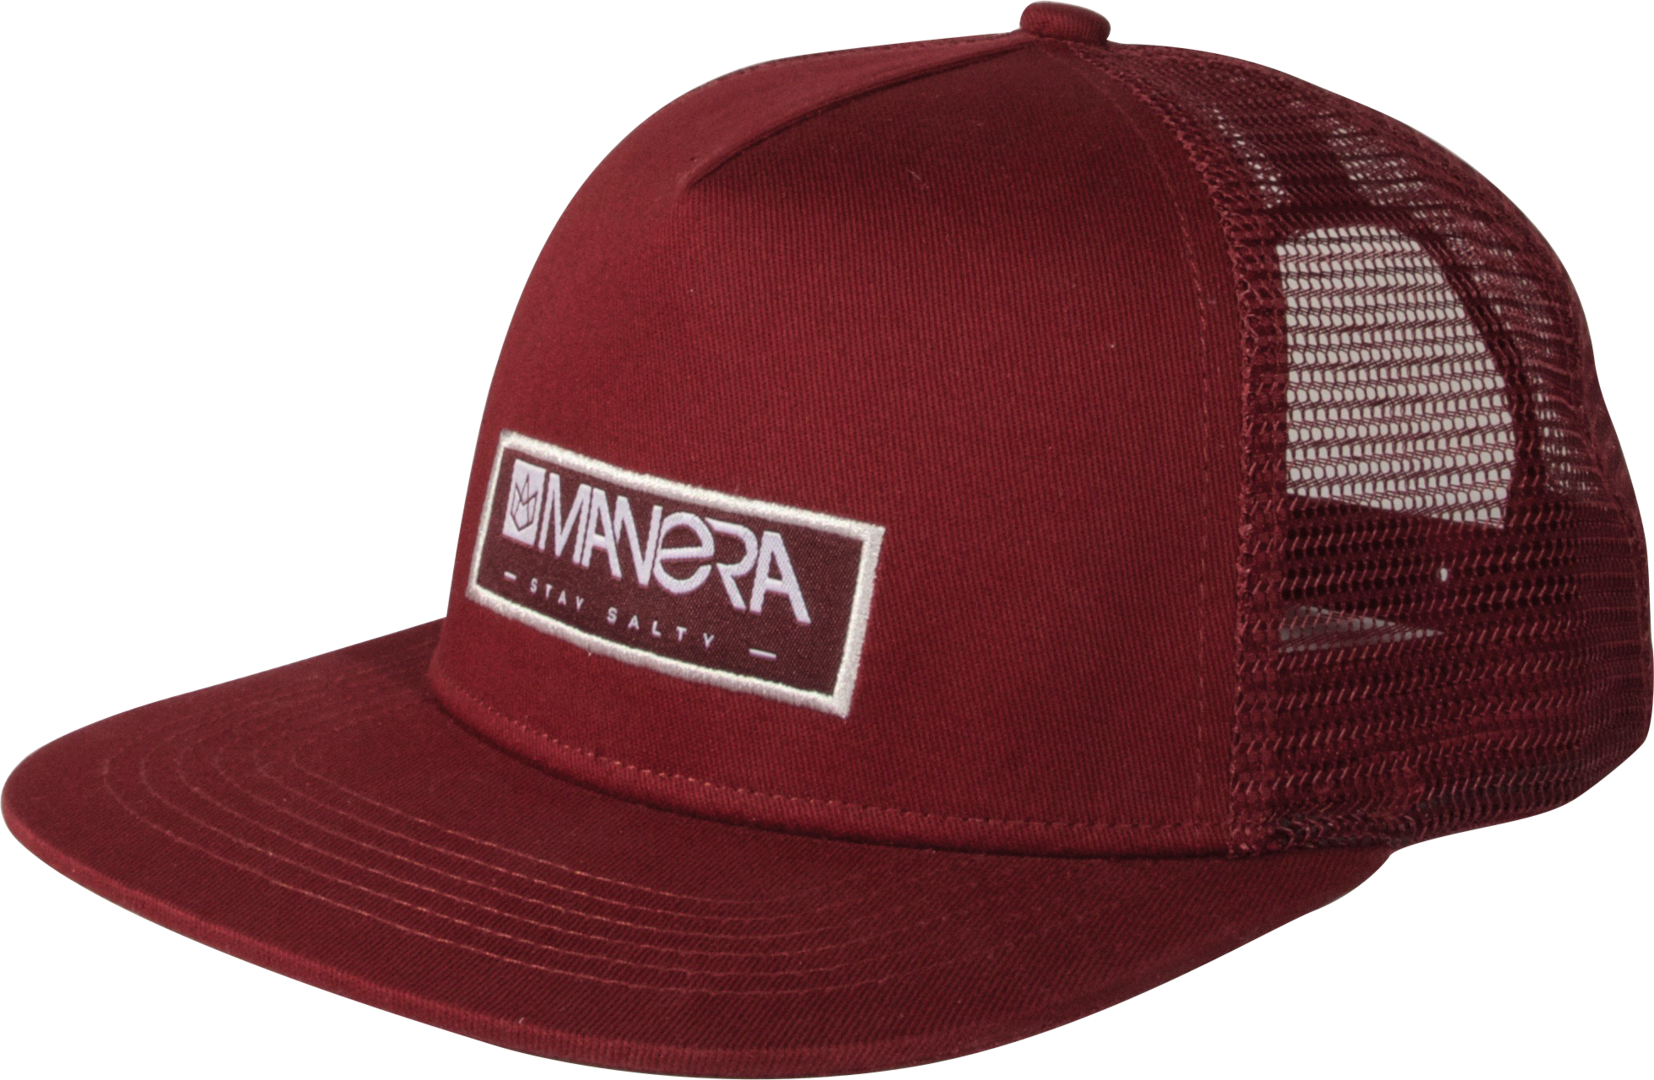 Manera - Cap Trucker / Winetasting